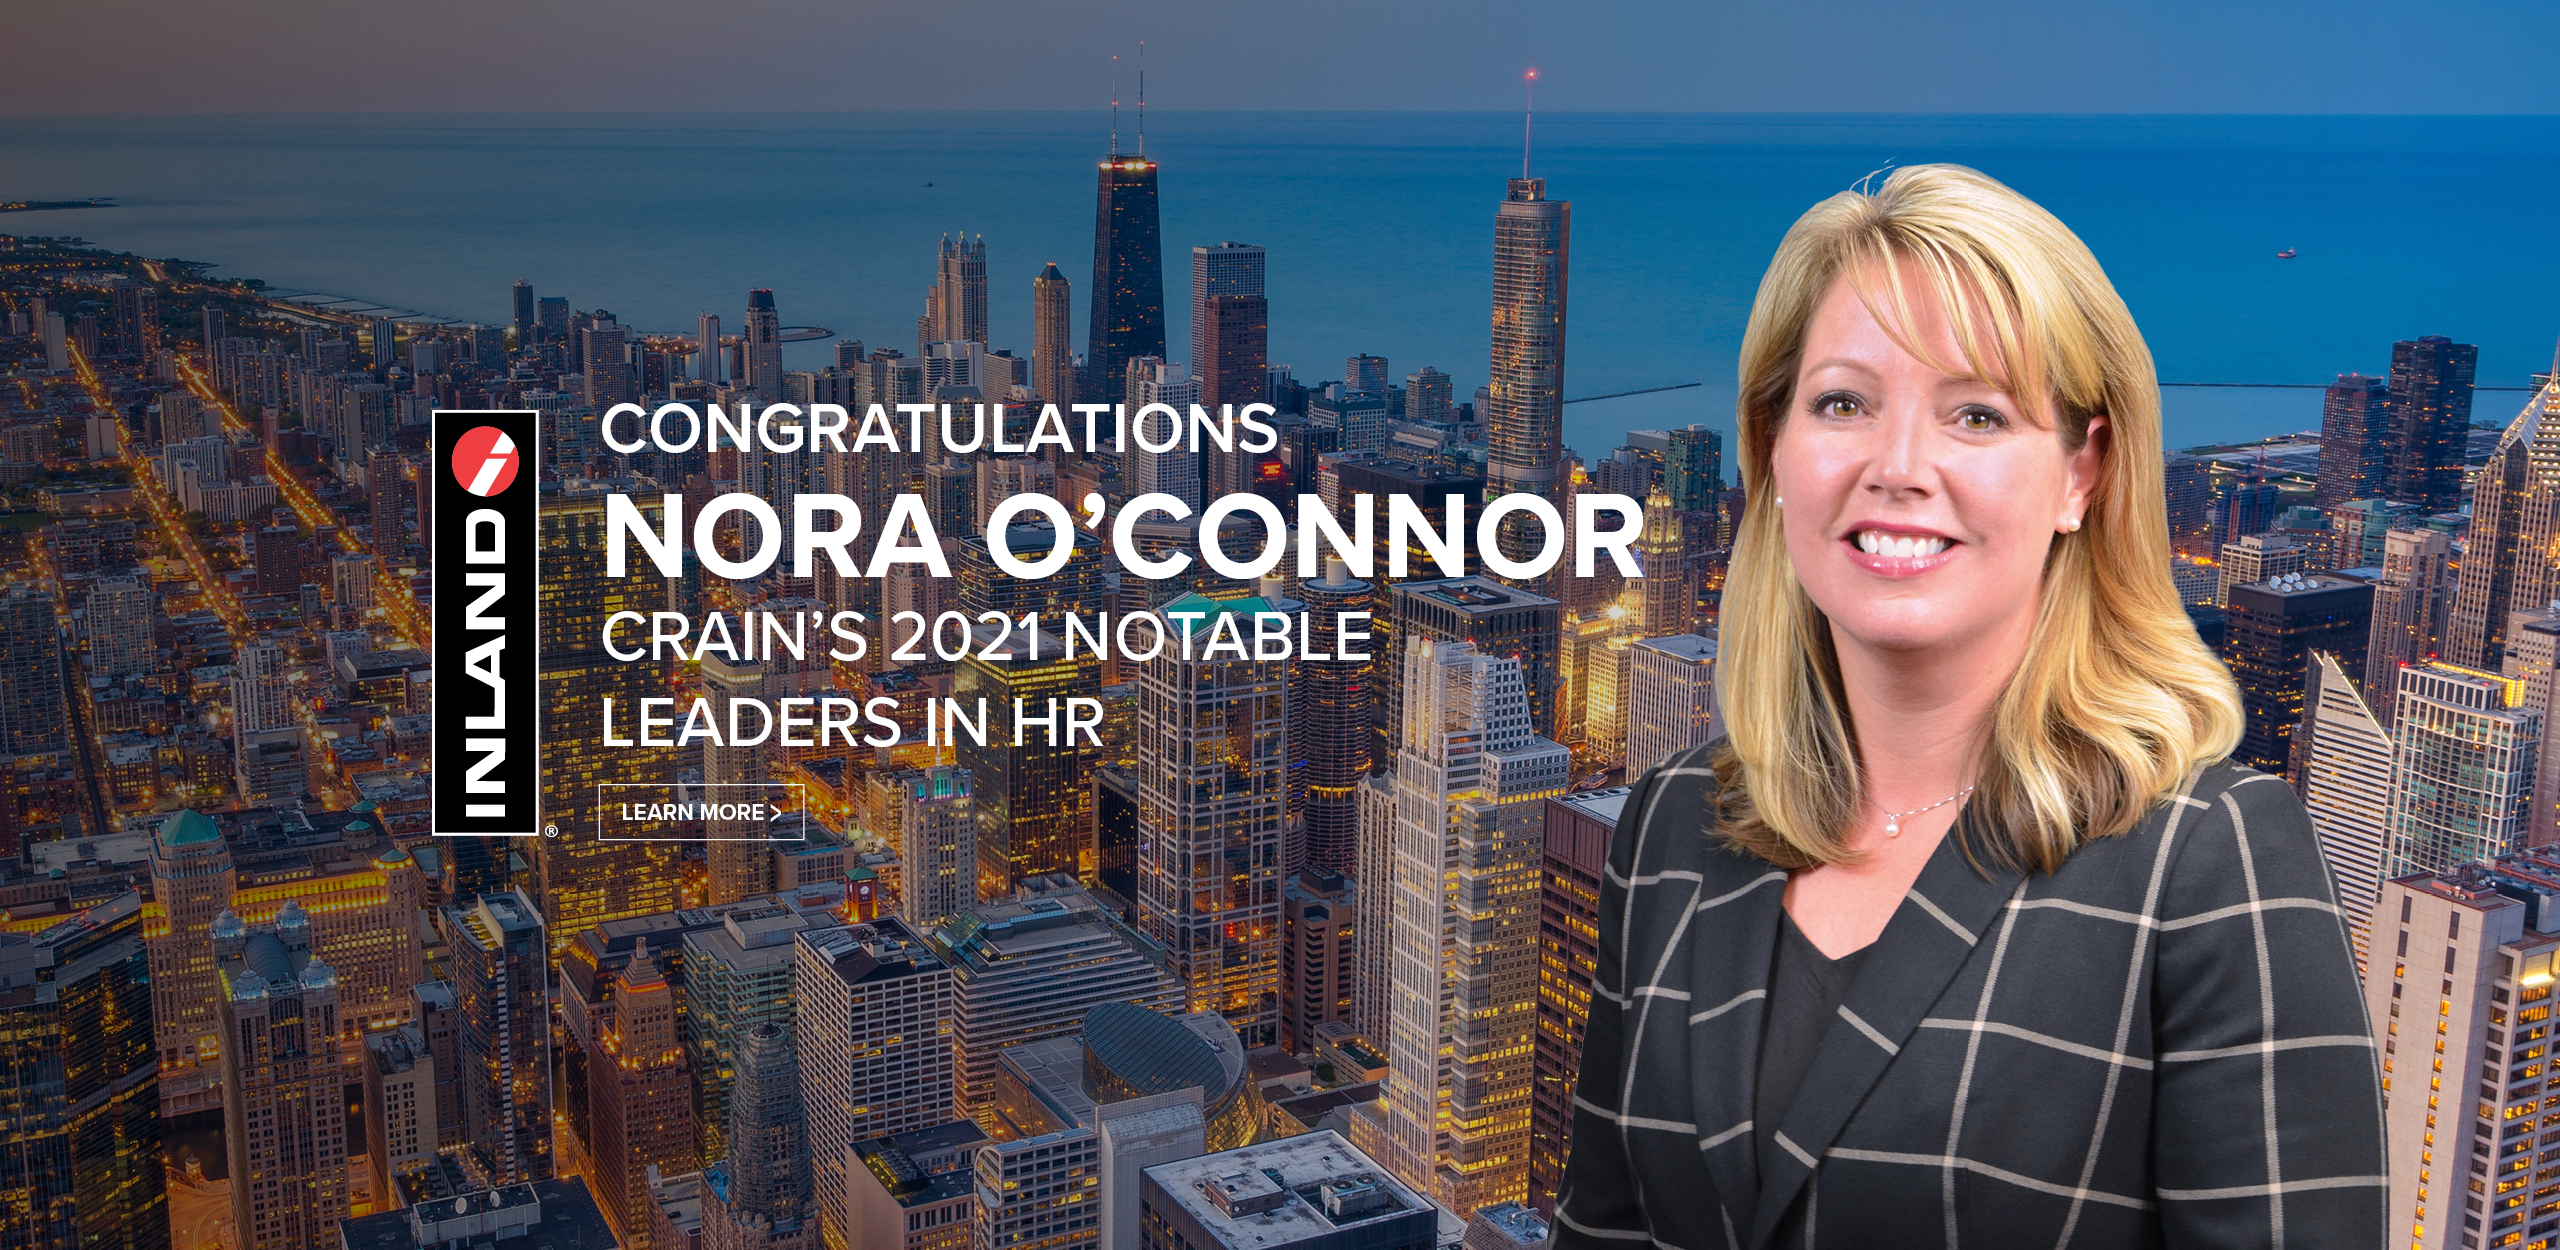 Nora O'Connor Crain's Notable Leaders in HR